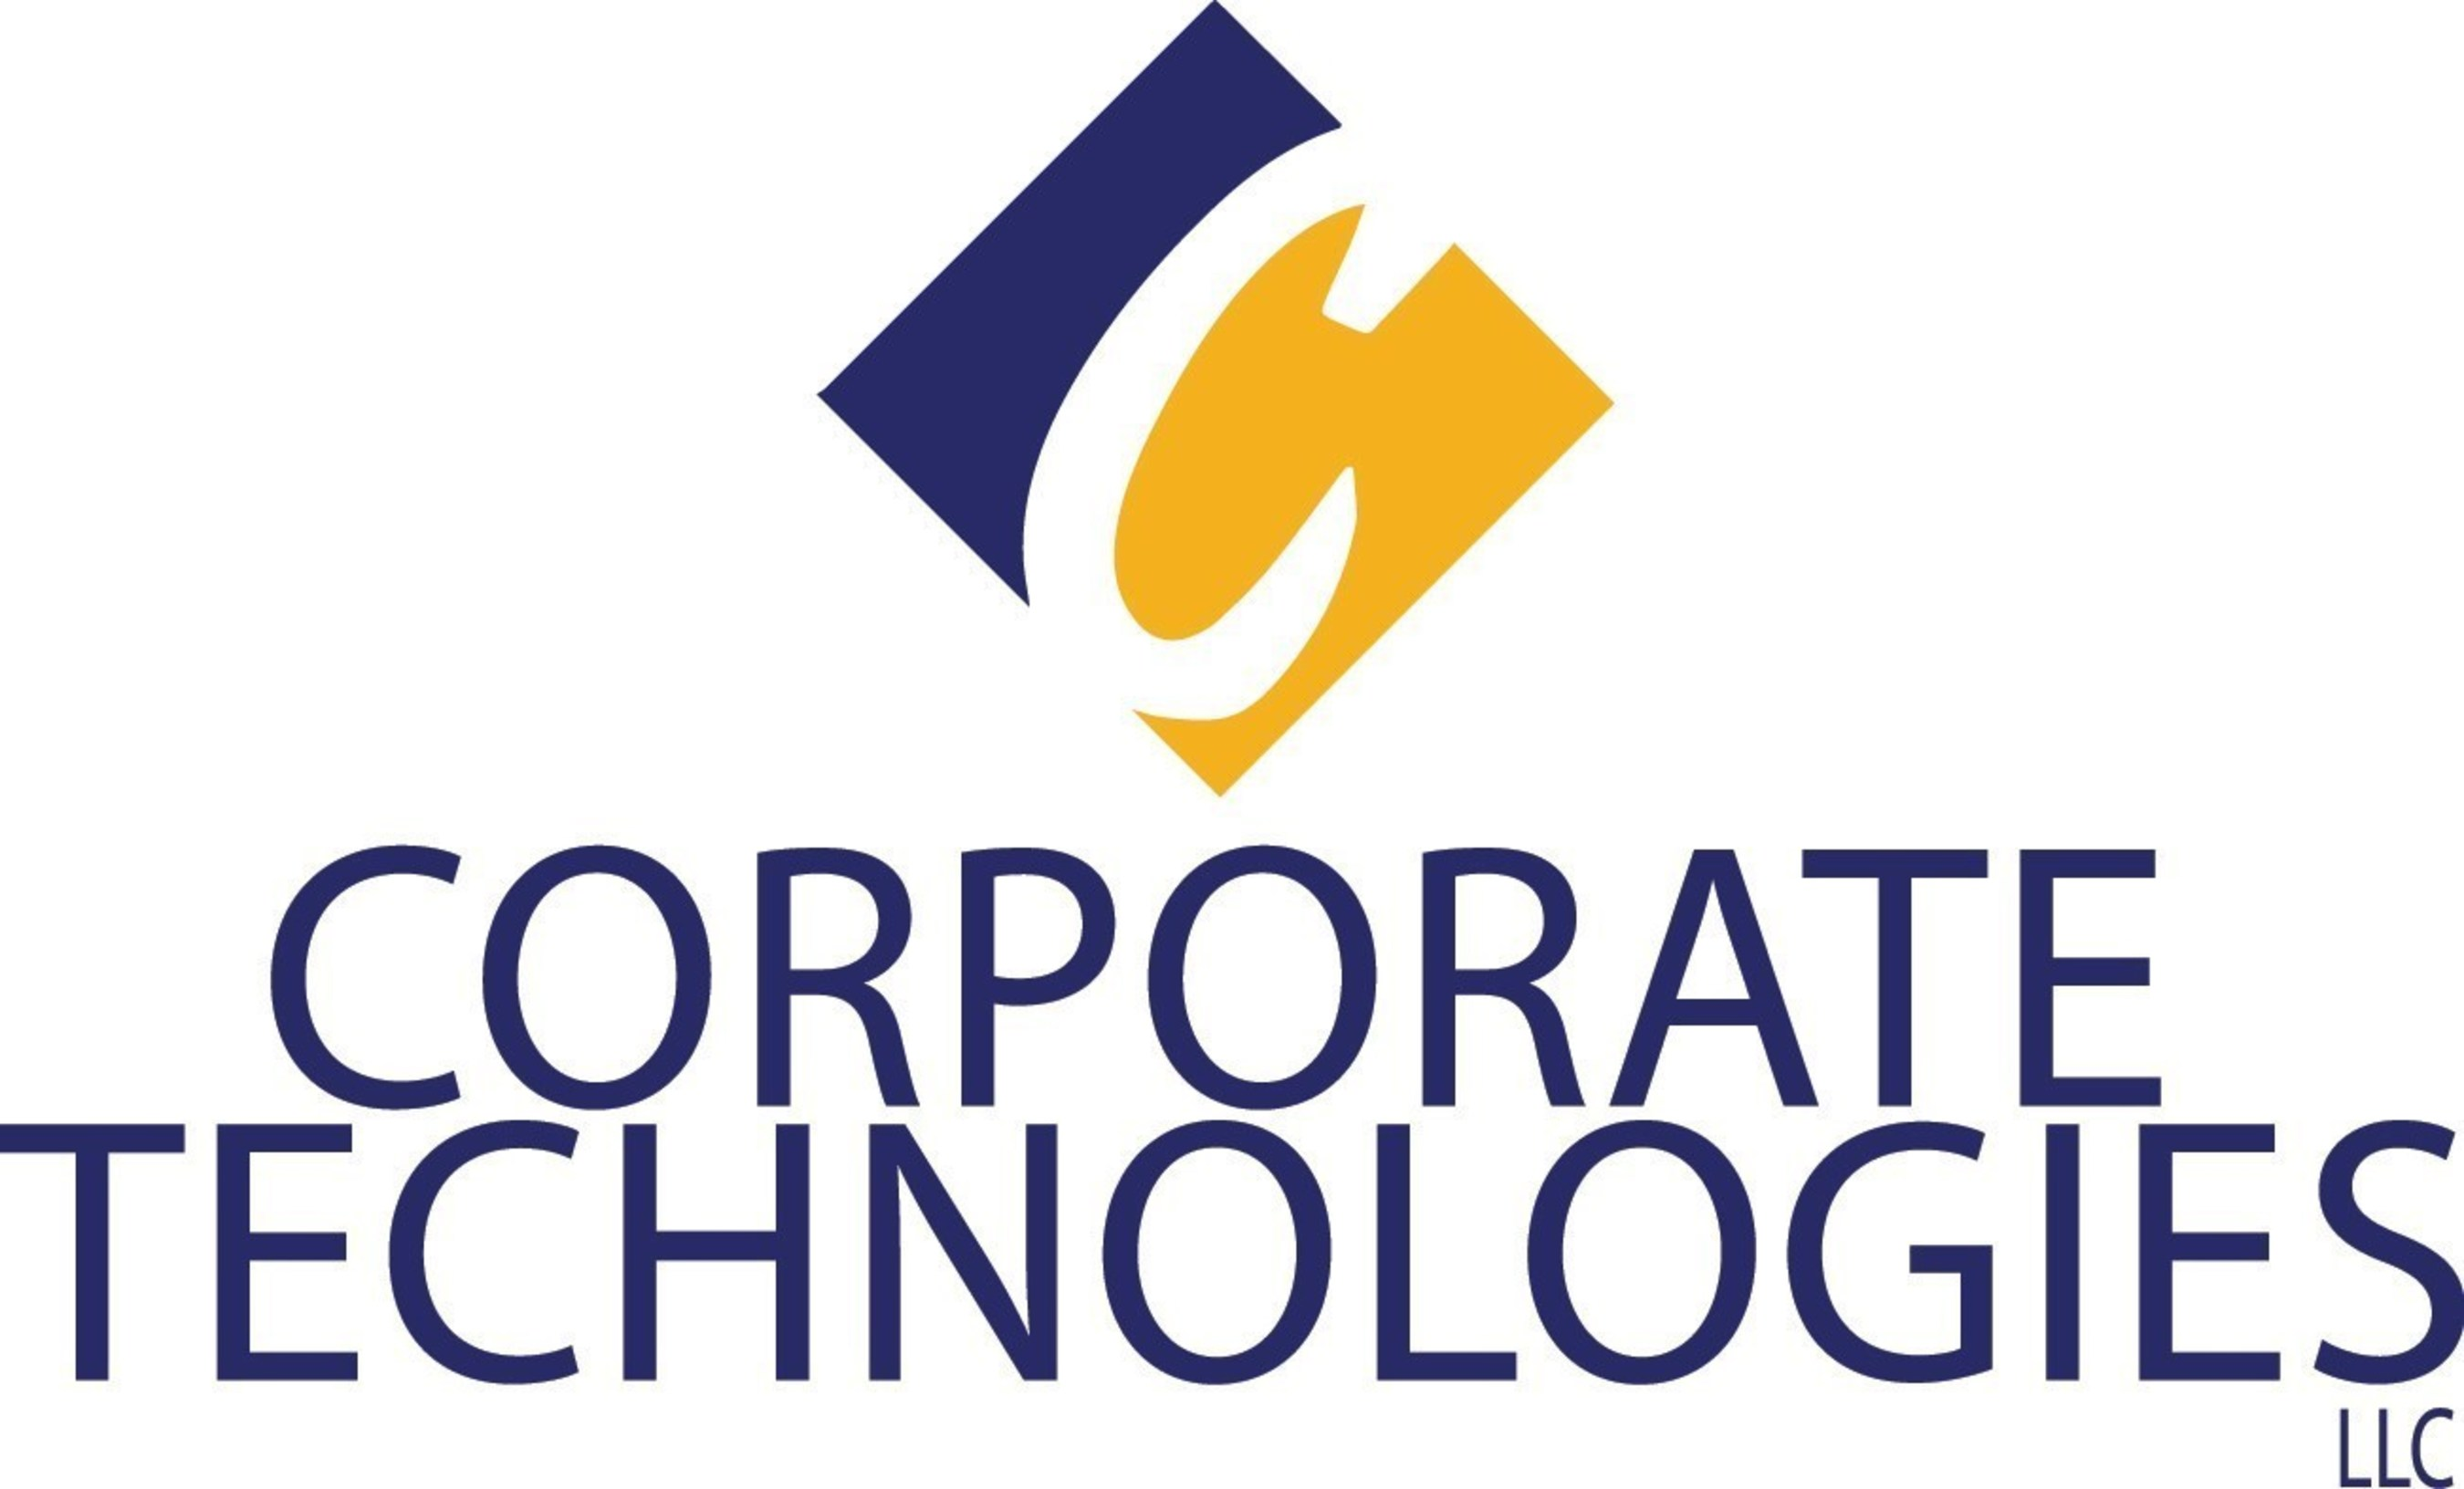 Corporate Technologies - one of the best places to work